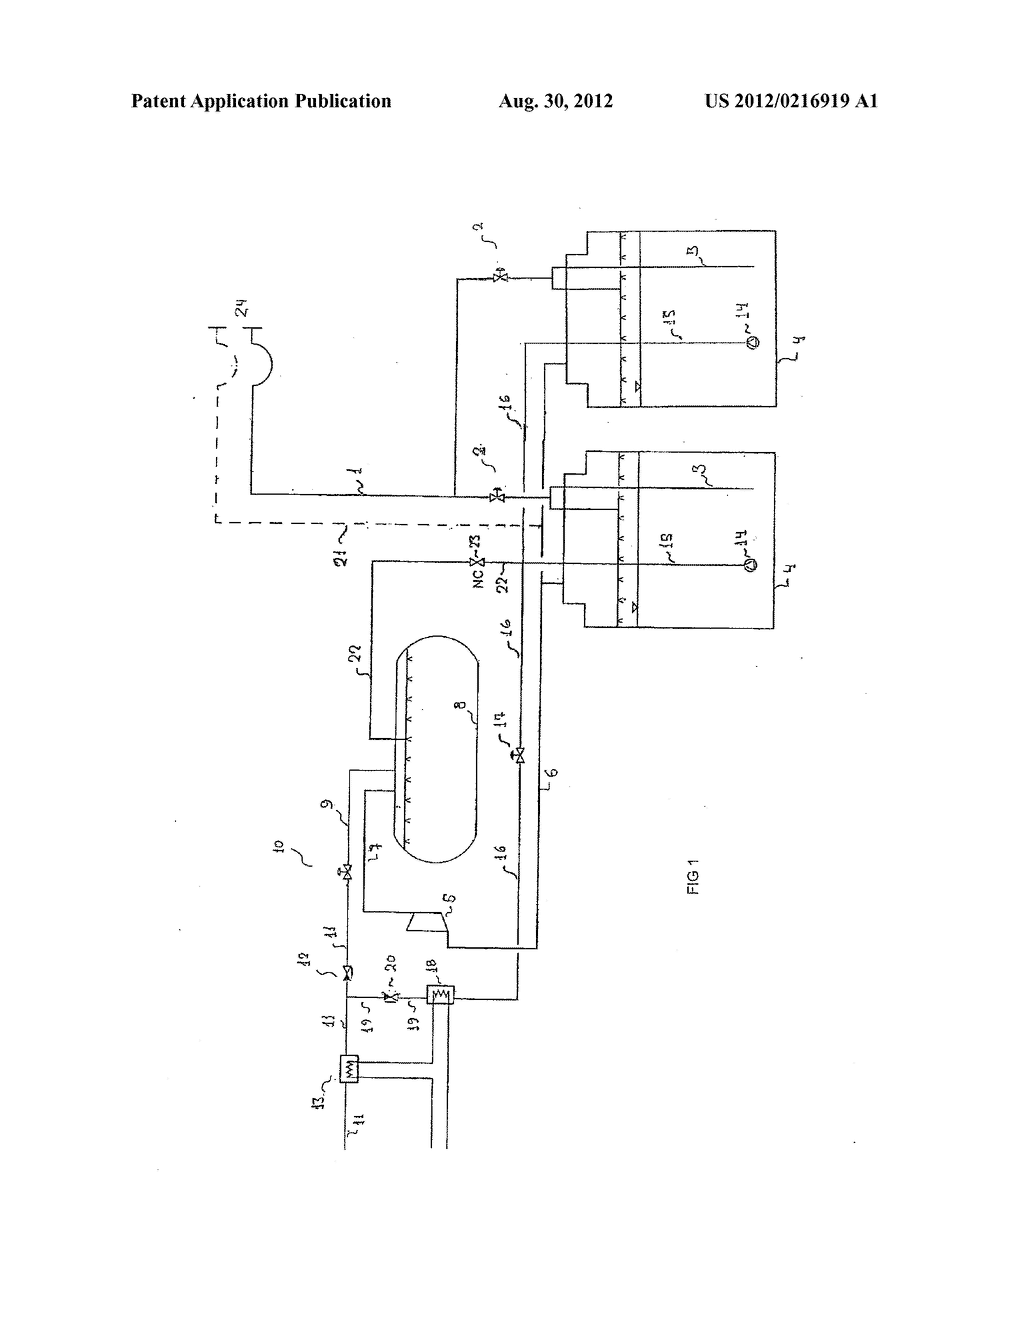 hight resolution of lng fuel tank system for at least one gas engine used for ship propulsion diagram schematic and image 02